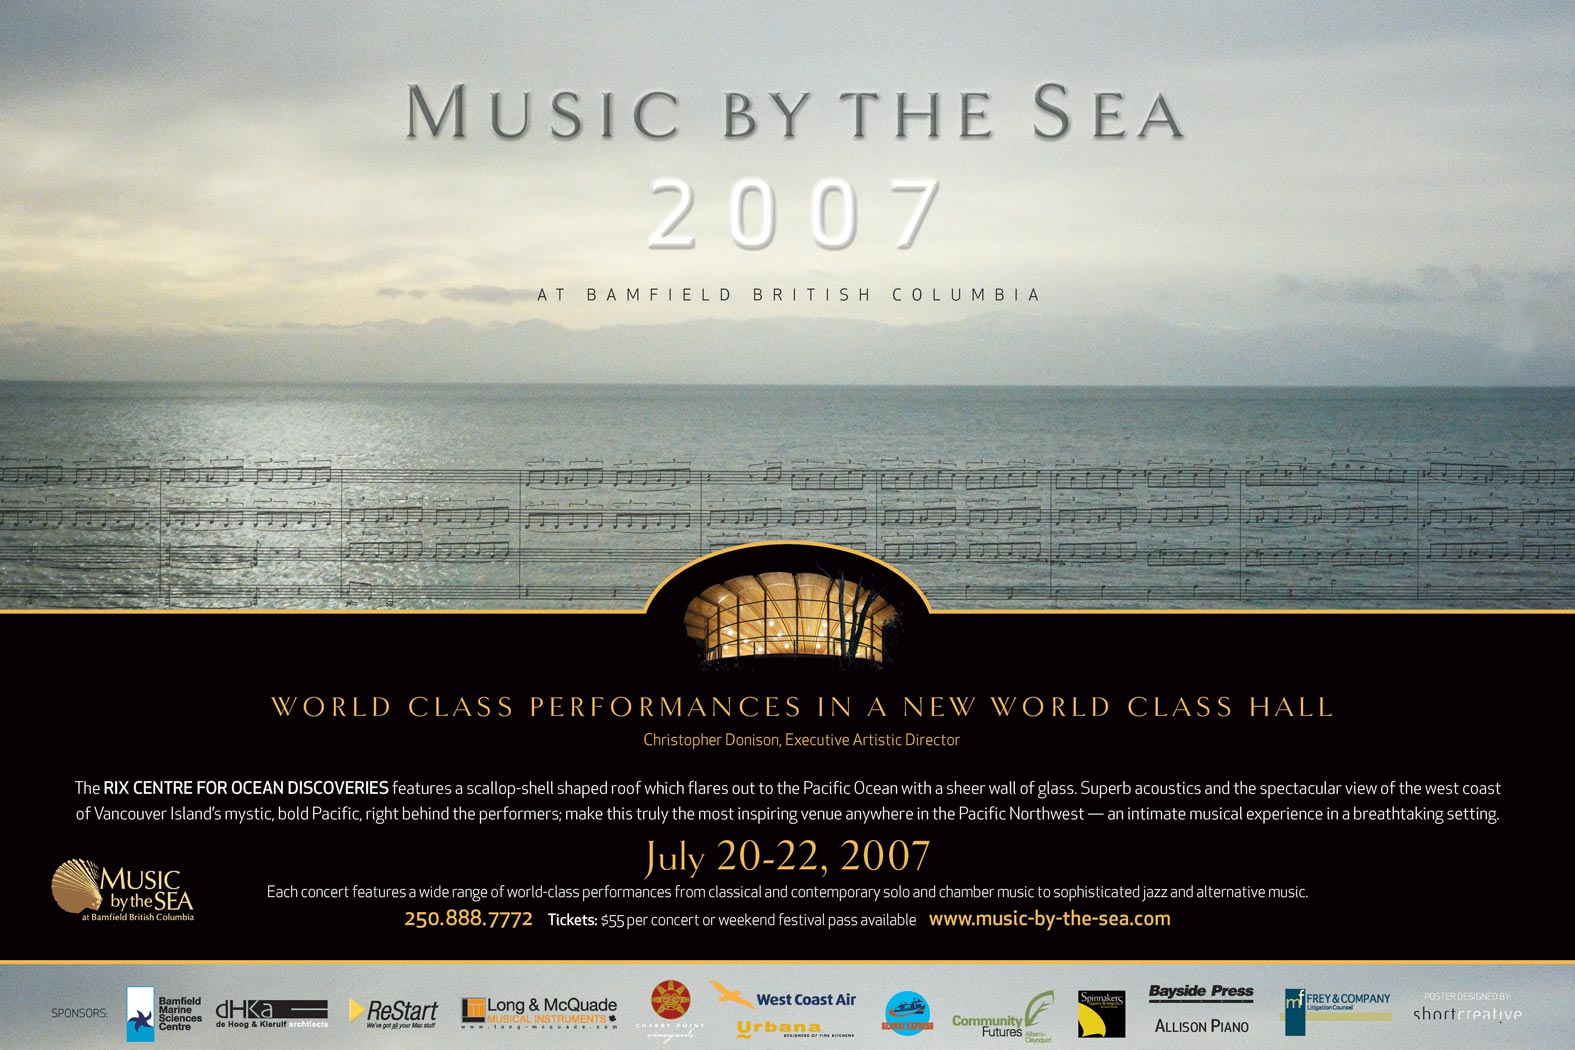 Music by the Sea 2007 poster